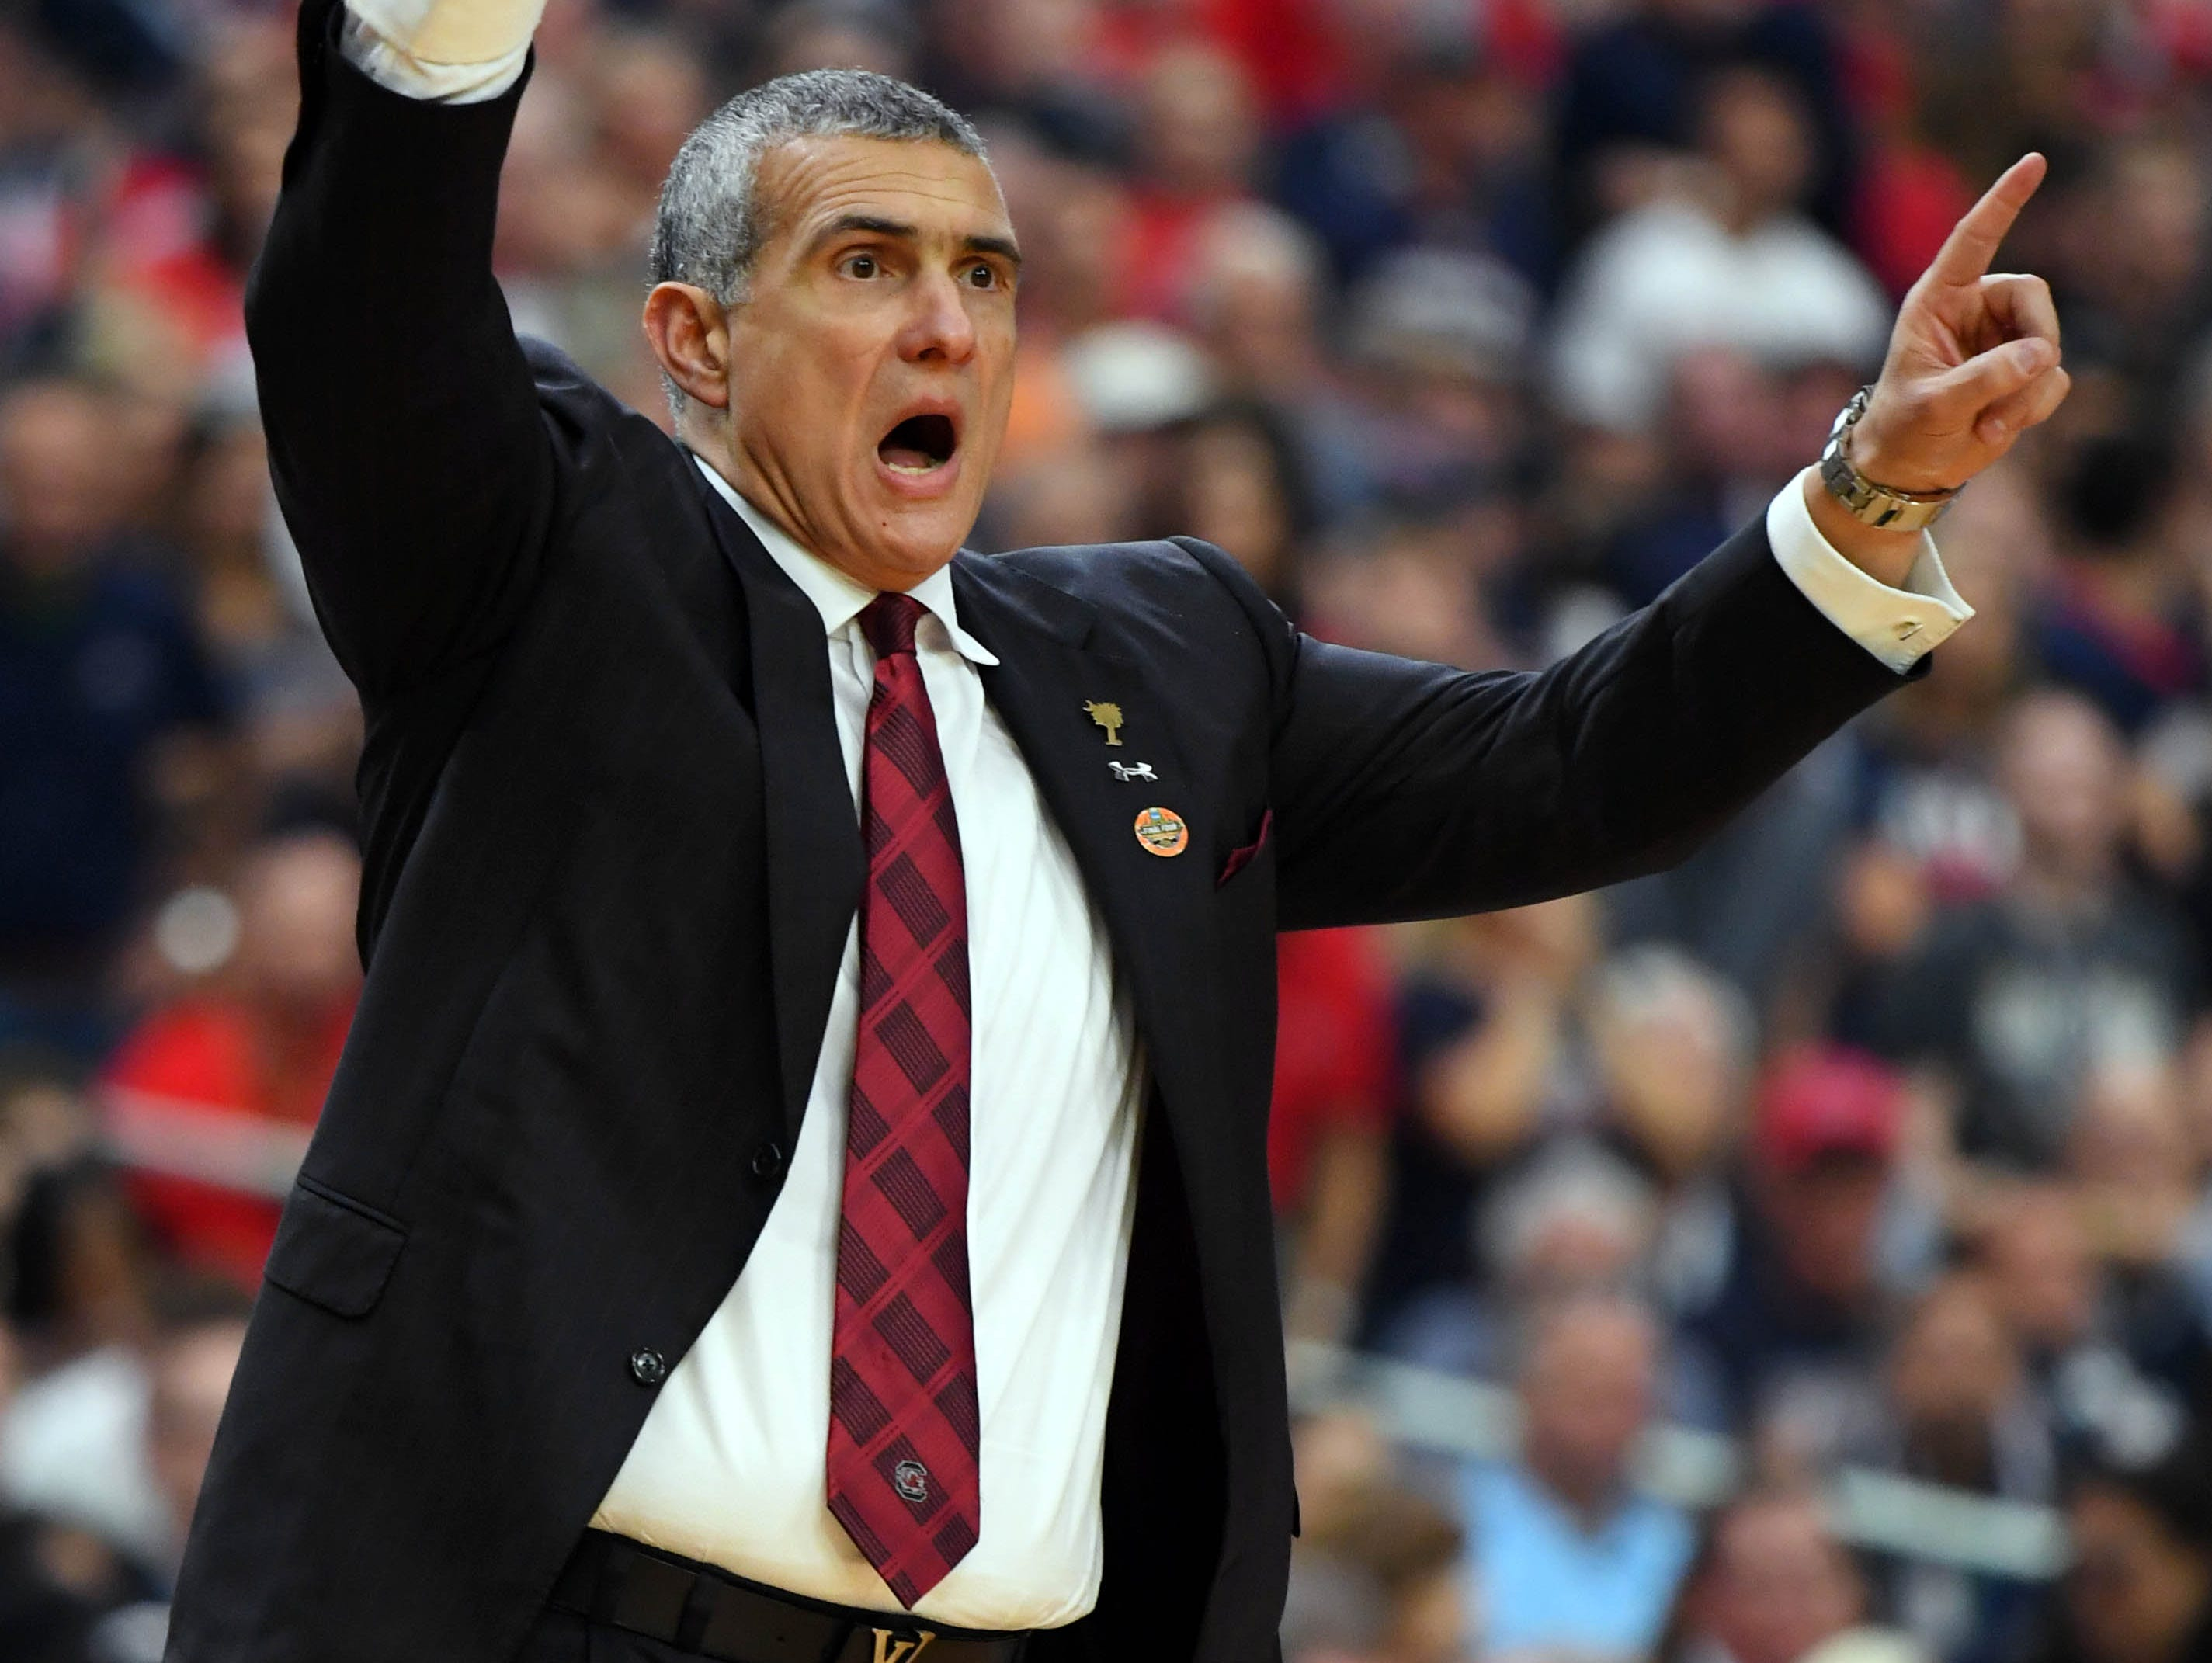 South Carolina Gamecocks head coach Frank Martin reacts during the second half against the Gonzaga Bulldogs in the semifinals of the 2017 NCAA Men's Final Four at University of Phoenix Stadium.